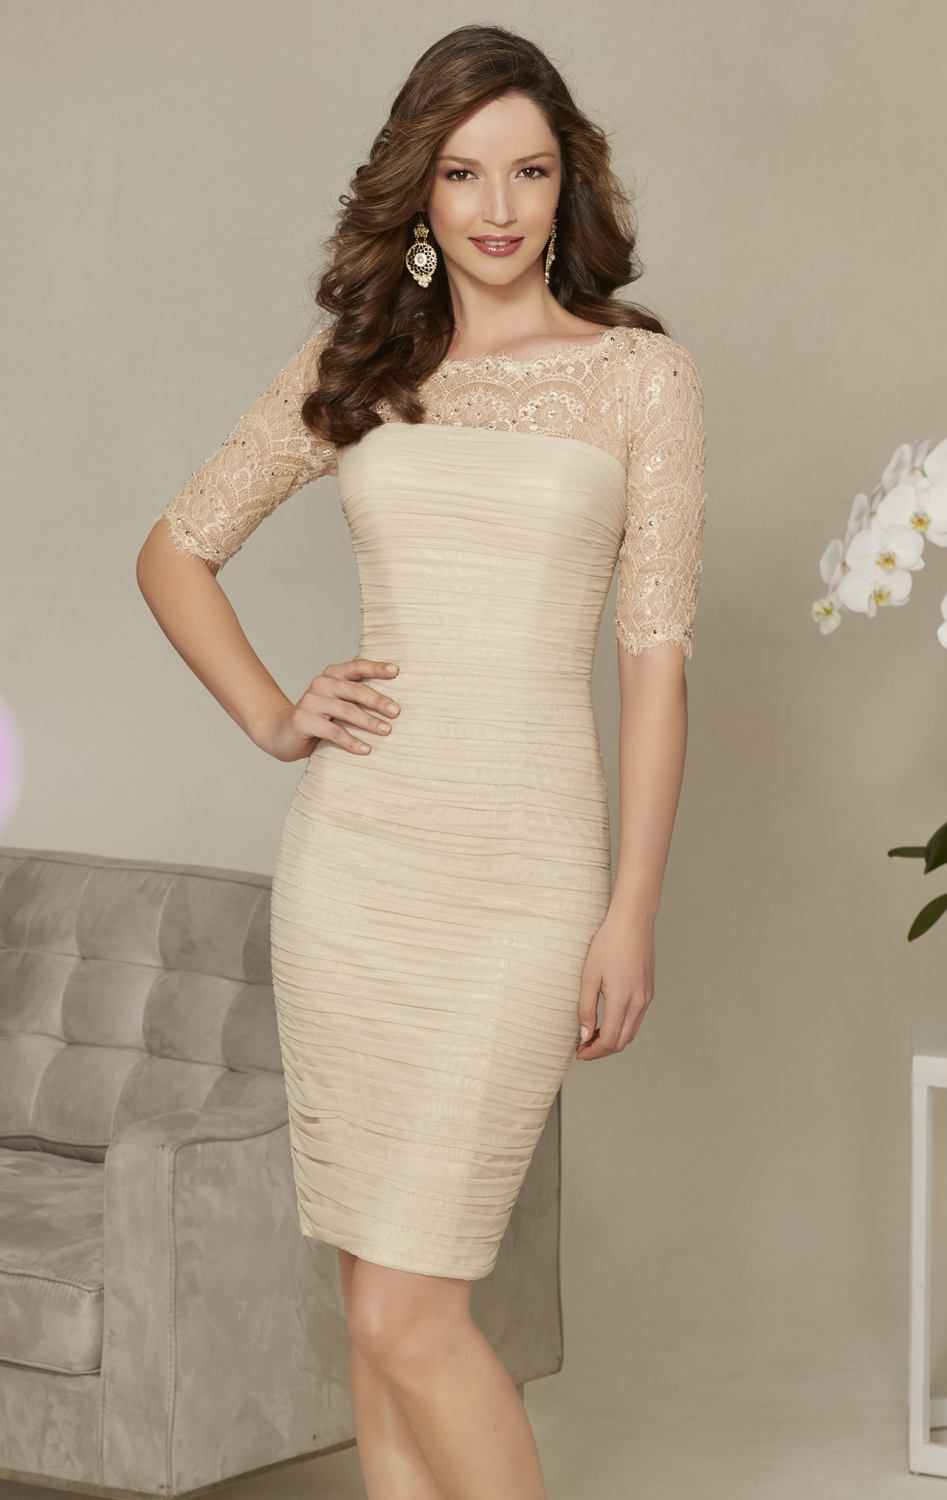 Beach wedding mother of the bride  Mori Lee  by MGNY by Mori Lee  MOB dresses  Pinterest  Mori